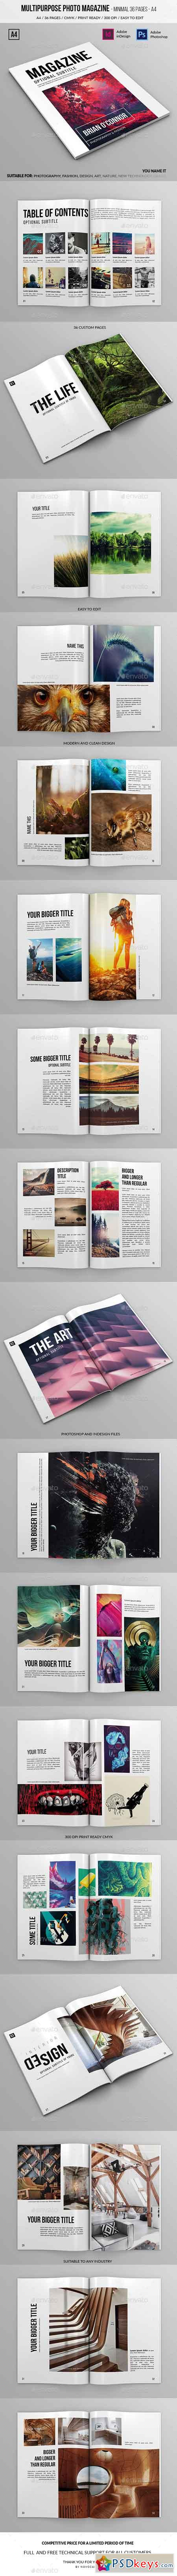 Multipurpose A4 Photo Magazine 36 Pages 17944812